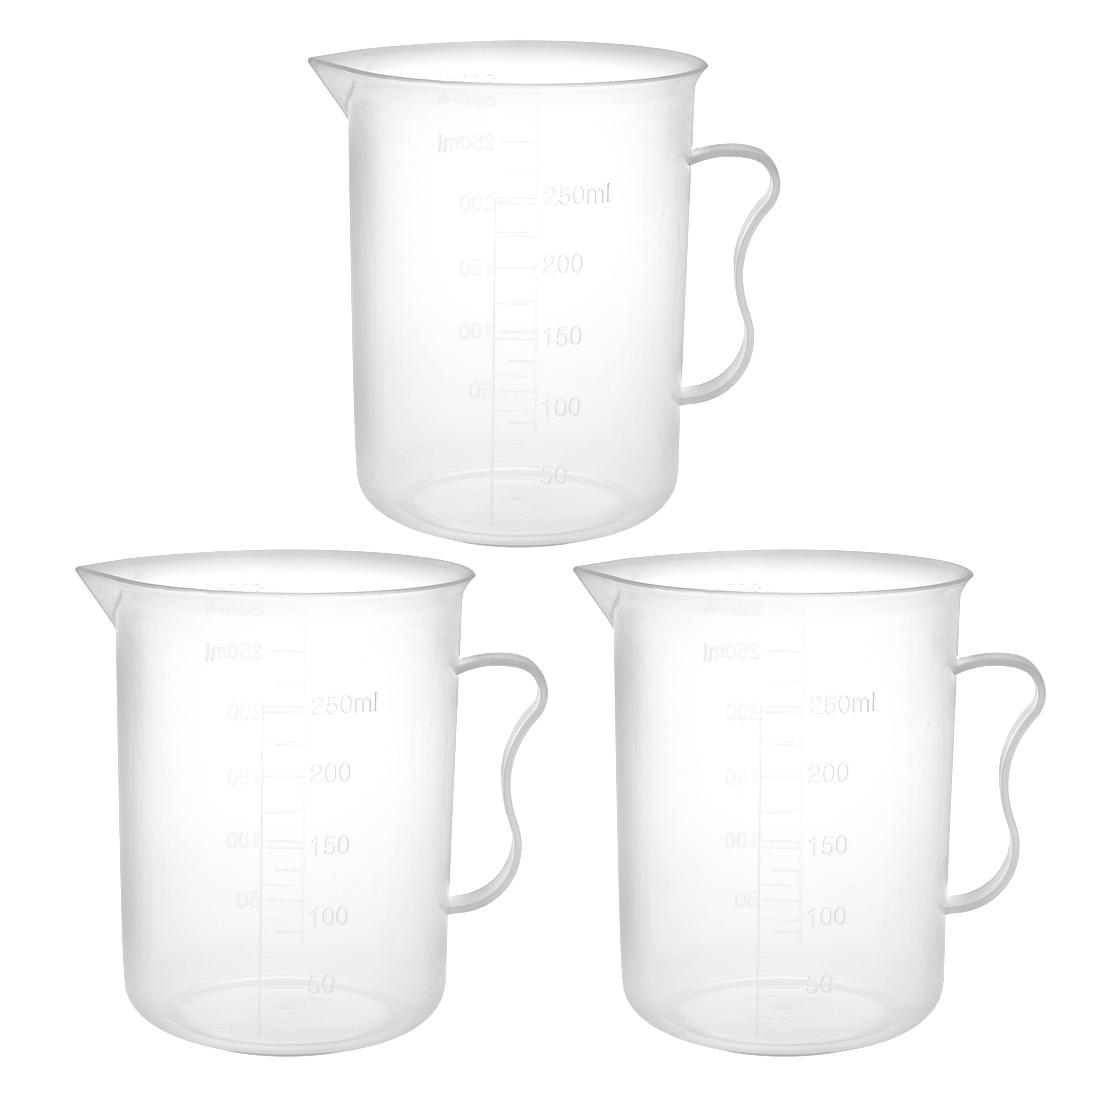 3pcs Laboratory Clear White PP 300mL Measuring Cup Handled Beaker by Unique-Bargains